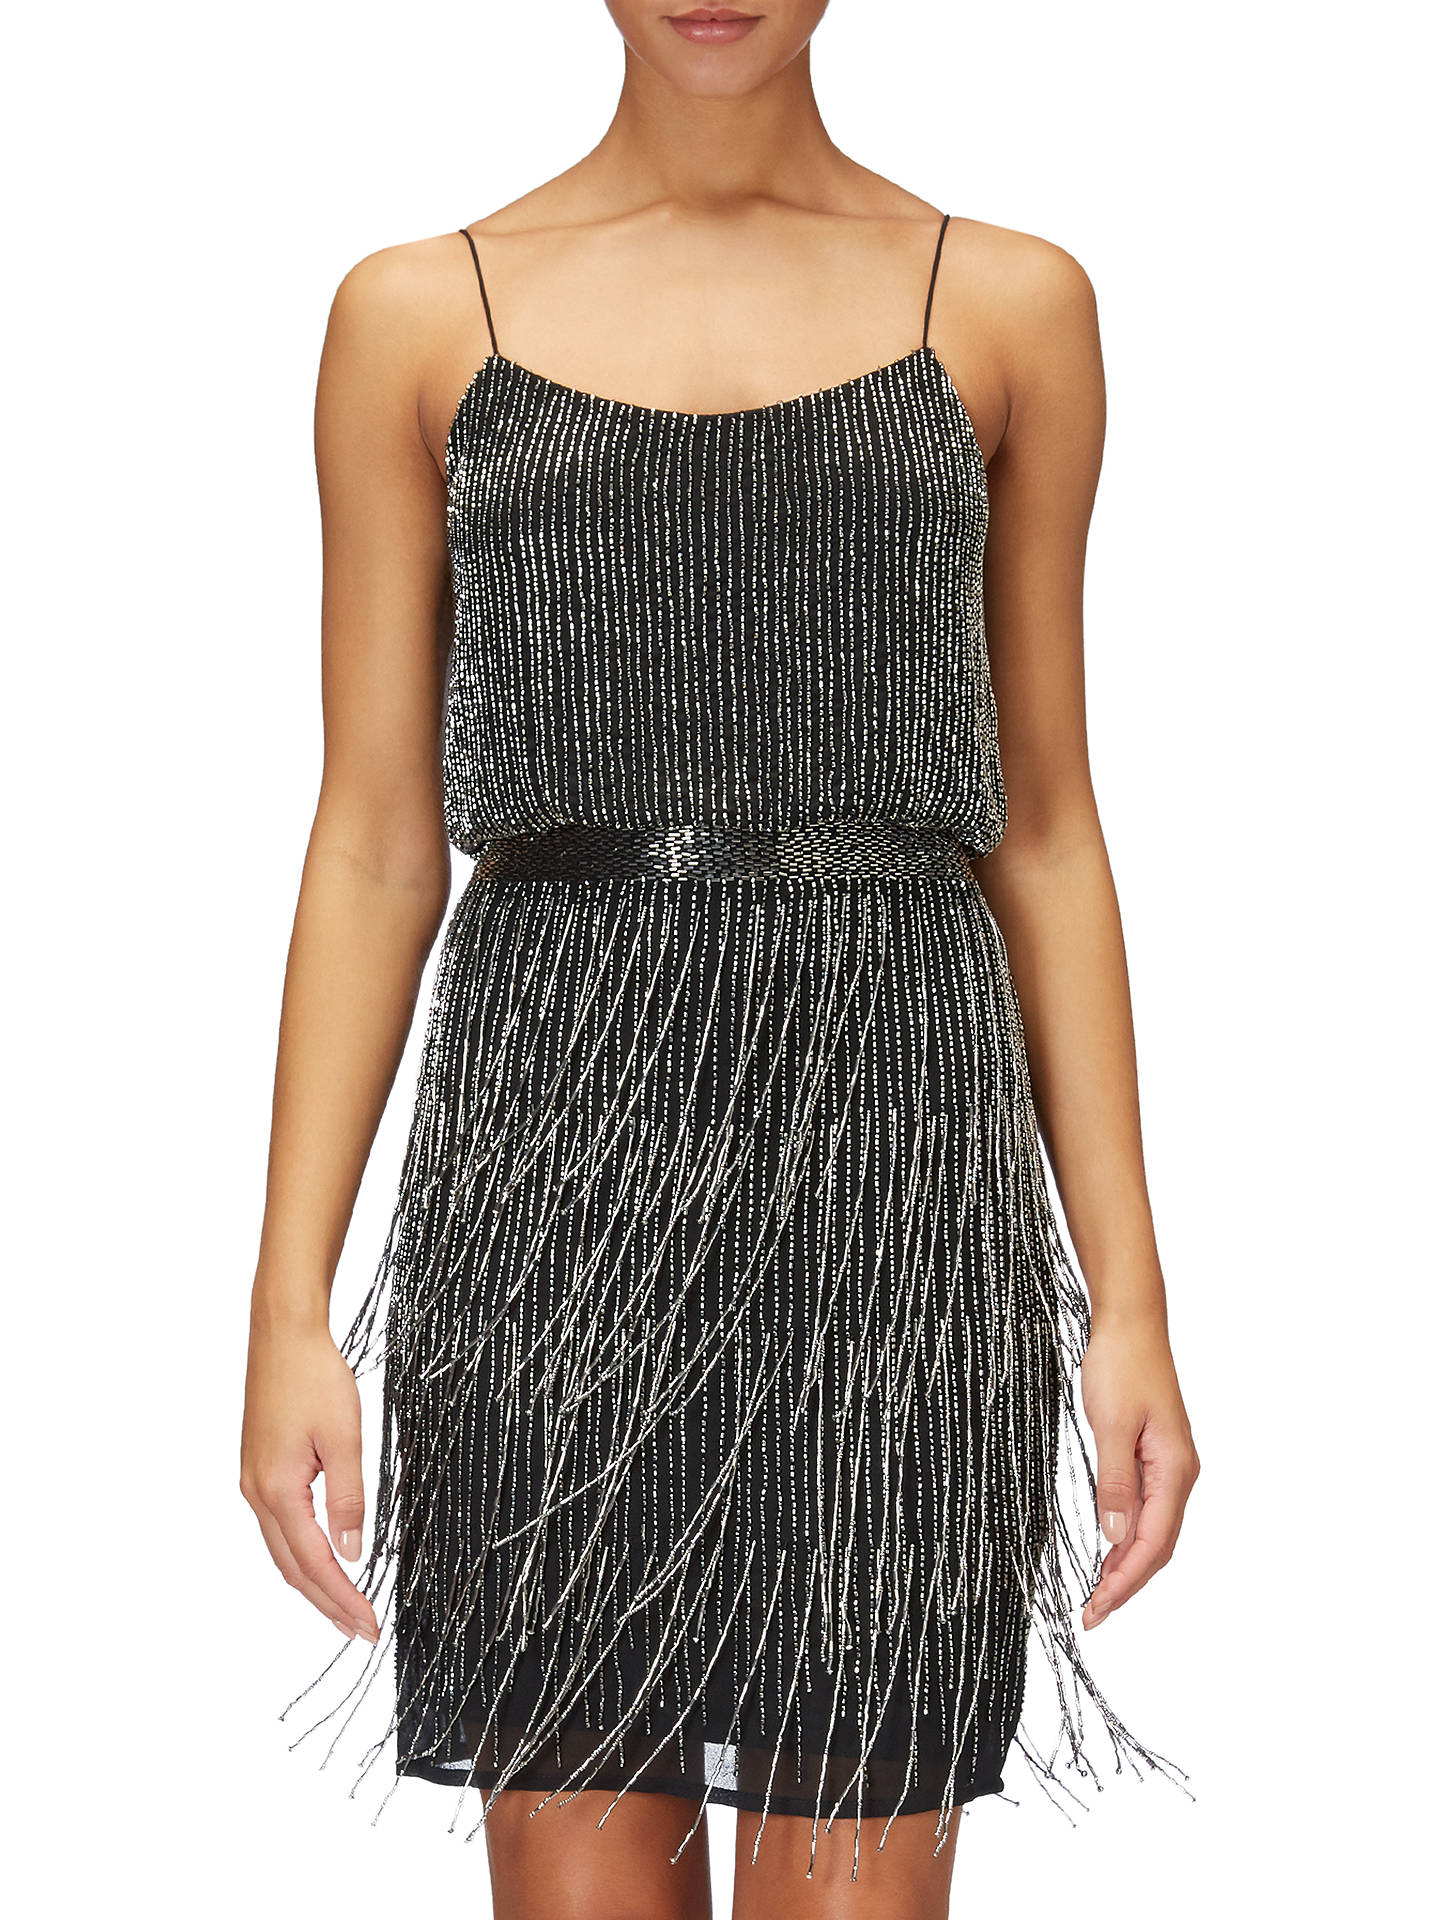 6baadef5a7e Buy Adrianna Papell Beaded Fringe Cocktail Dress